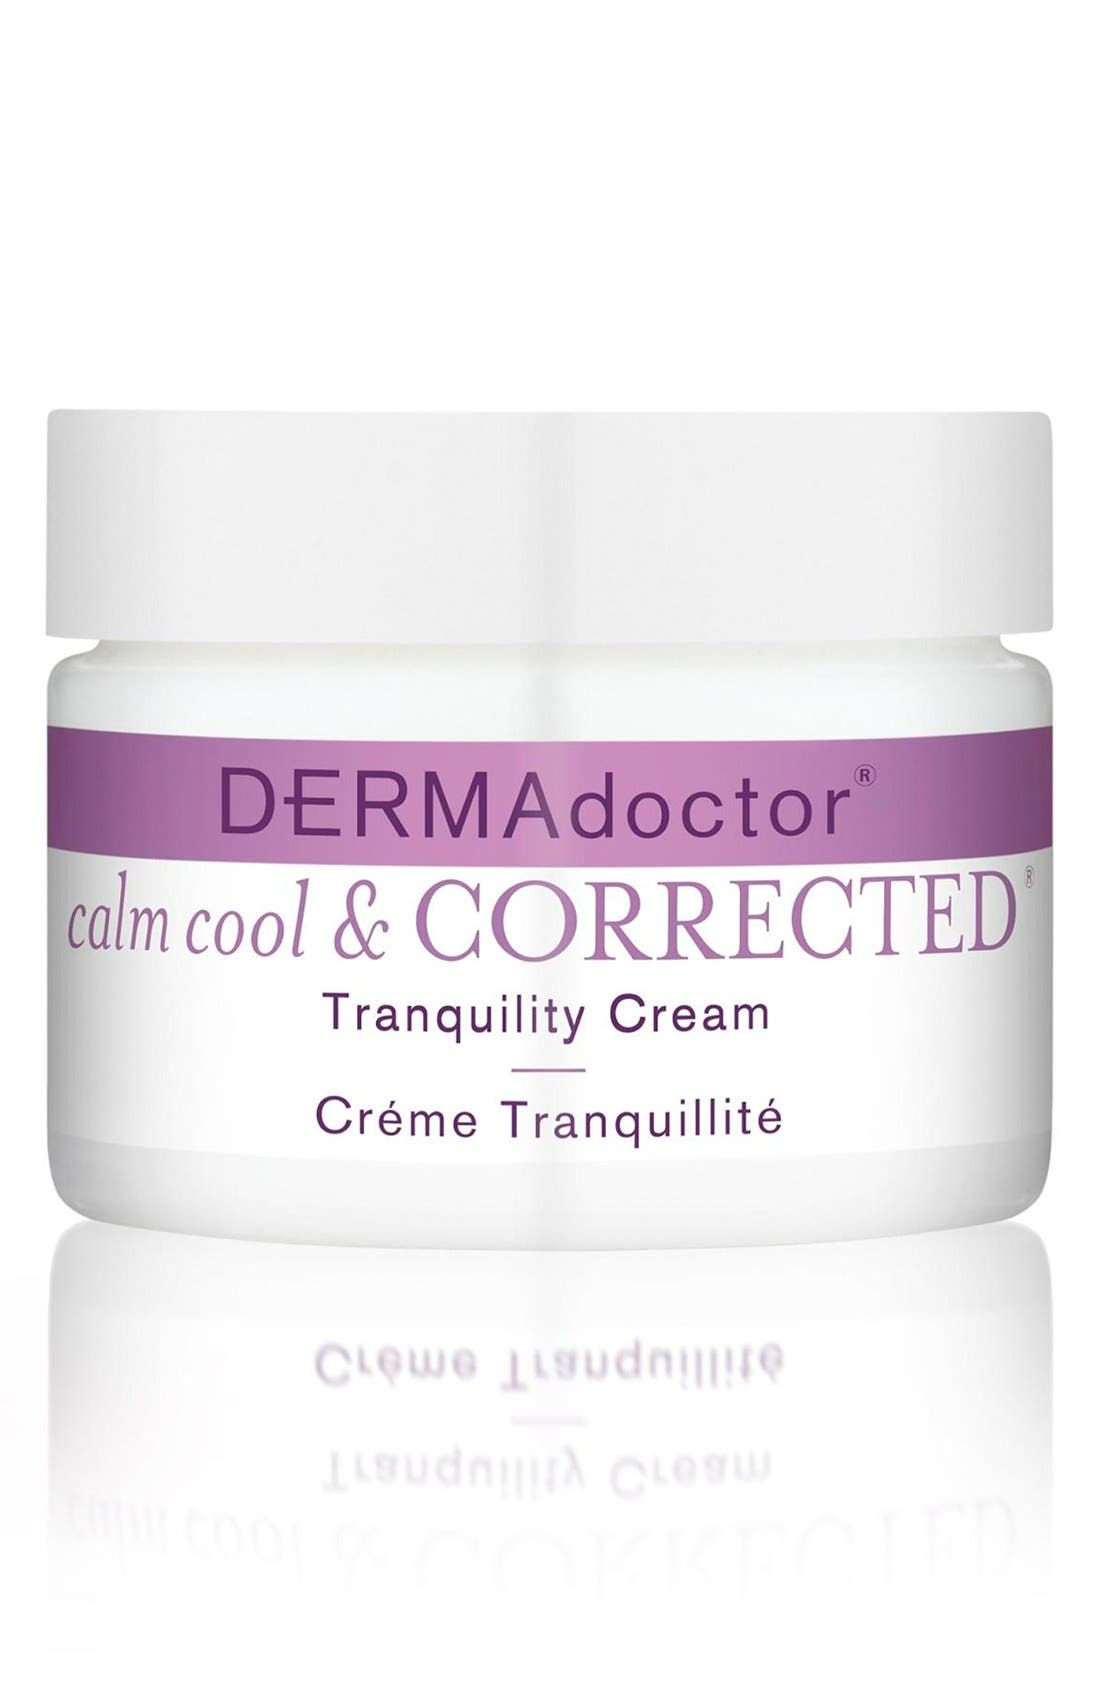 DERMAdoctor® 'calm cool & CORRECTED®' Anti-Redness Tranquility Cream